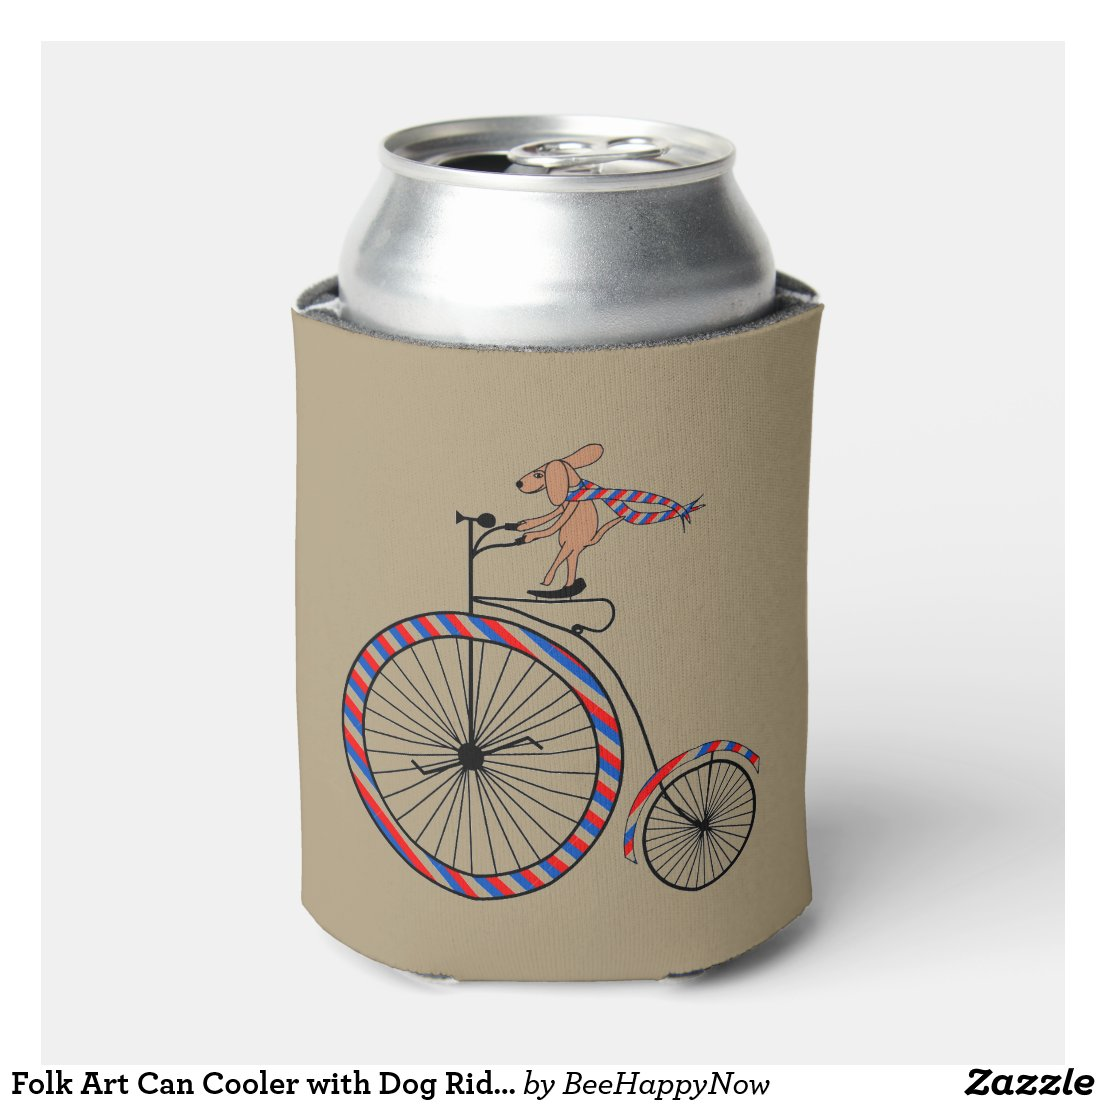 Folk Art Can Cooler with Dog Riding Bicycle